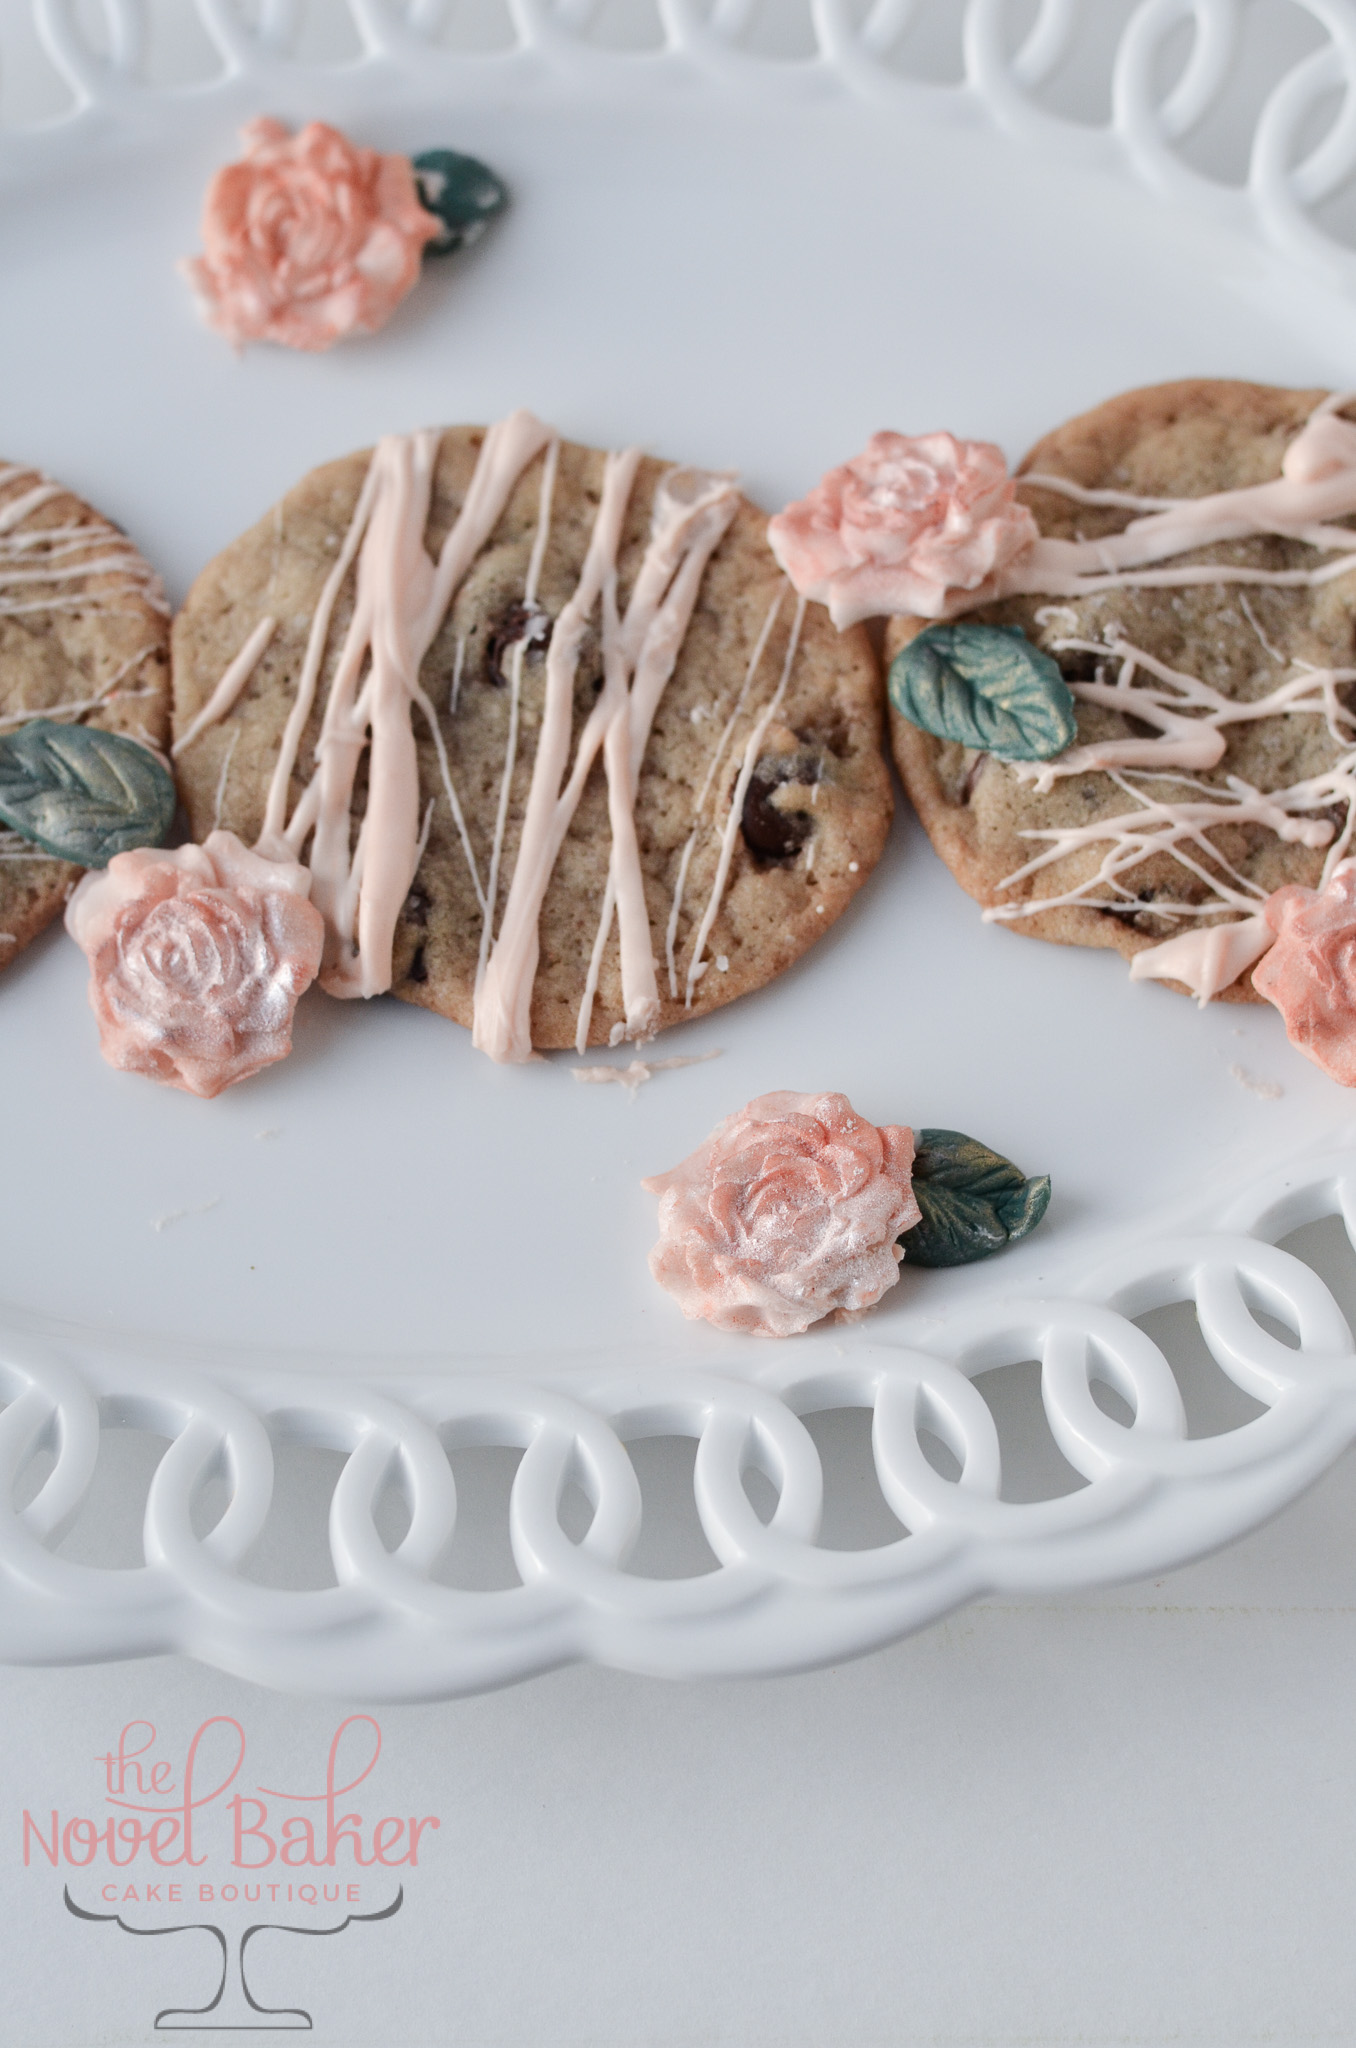 Chocolate Chip Cookies drizzled with white chocolate tinted peach with peach fondant roses/dark green fondant leaves on a scalloped edge white plate